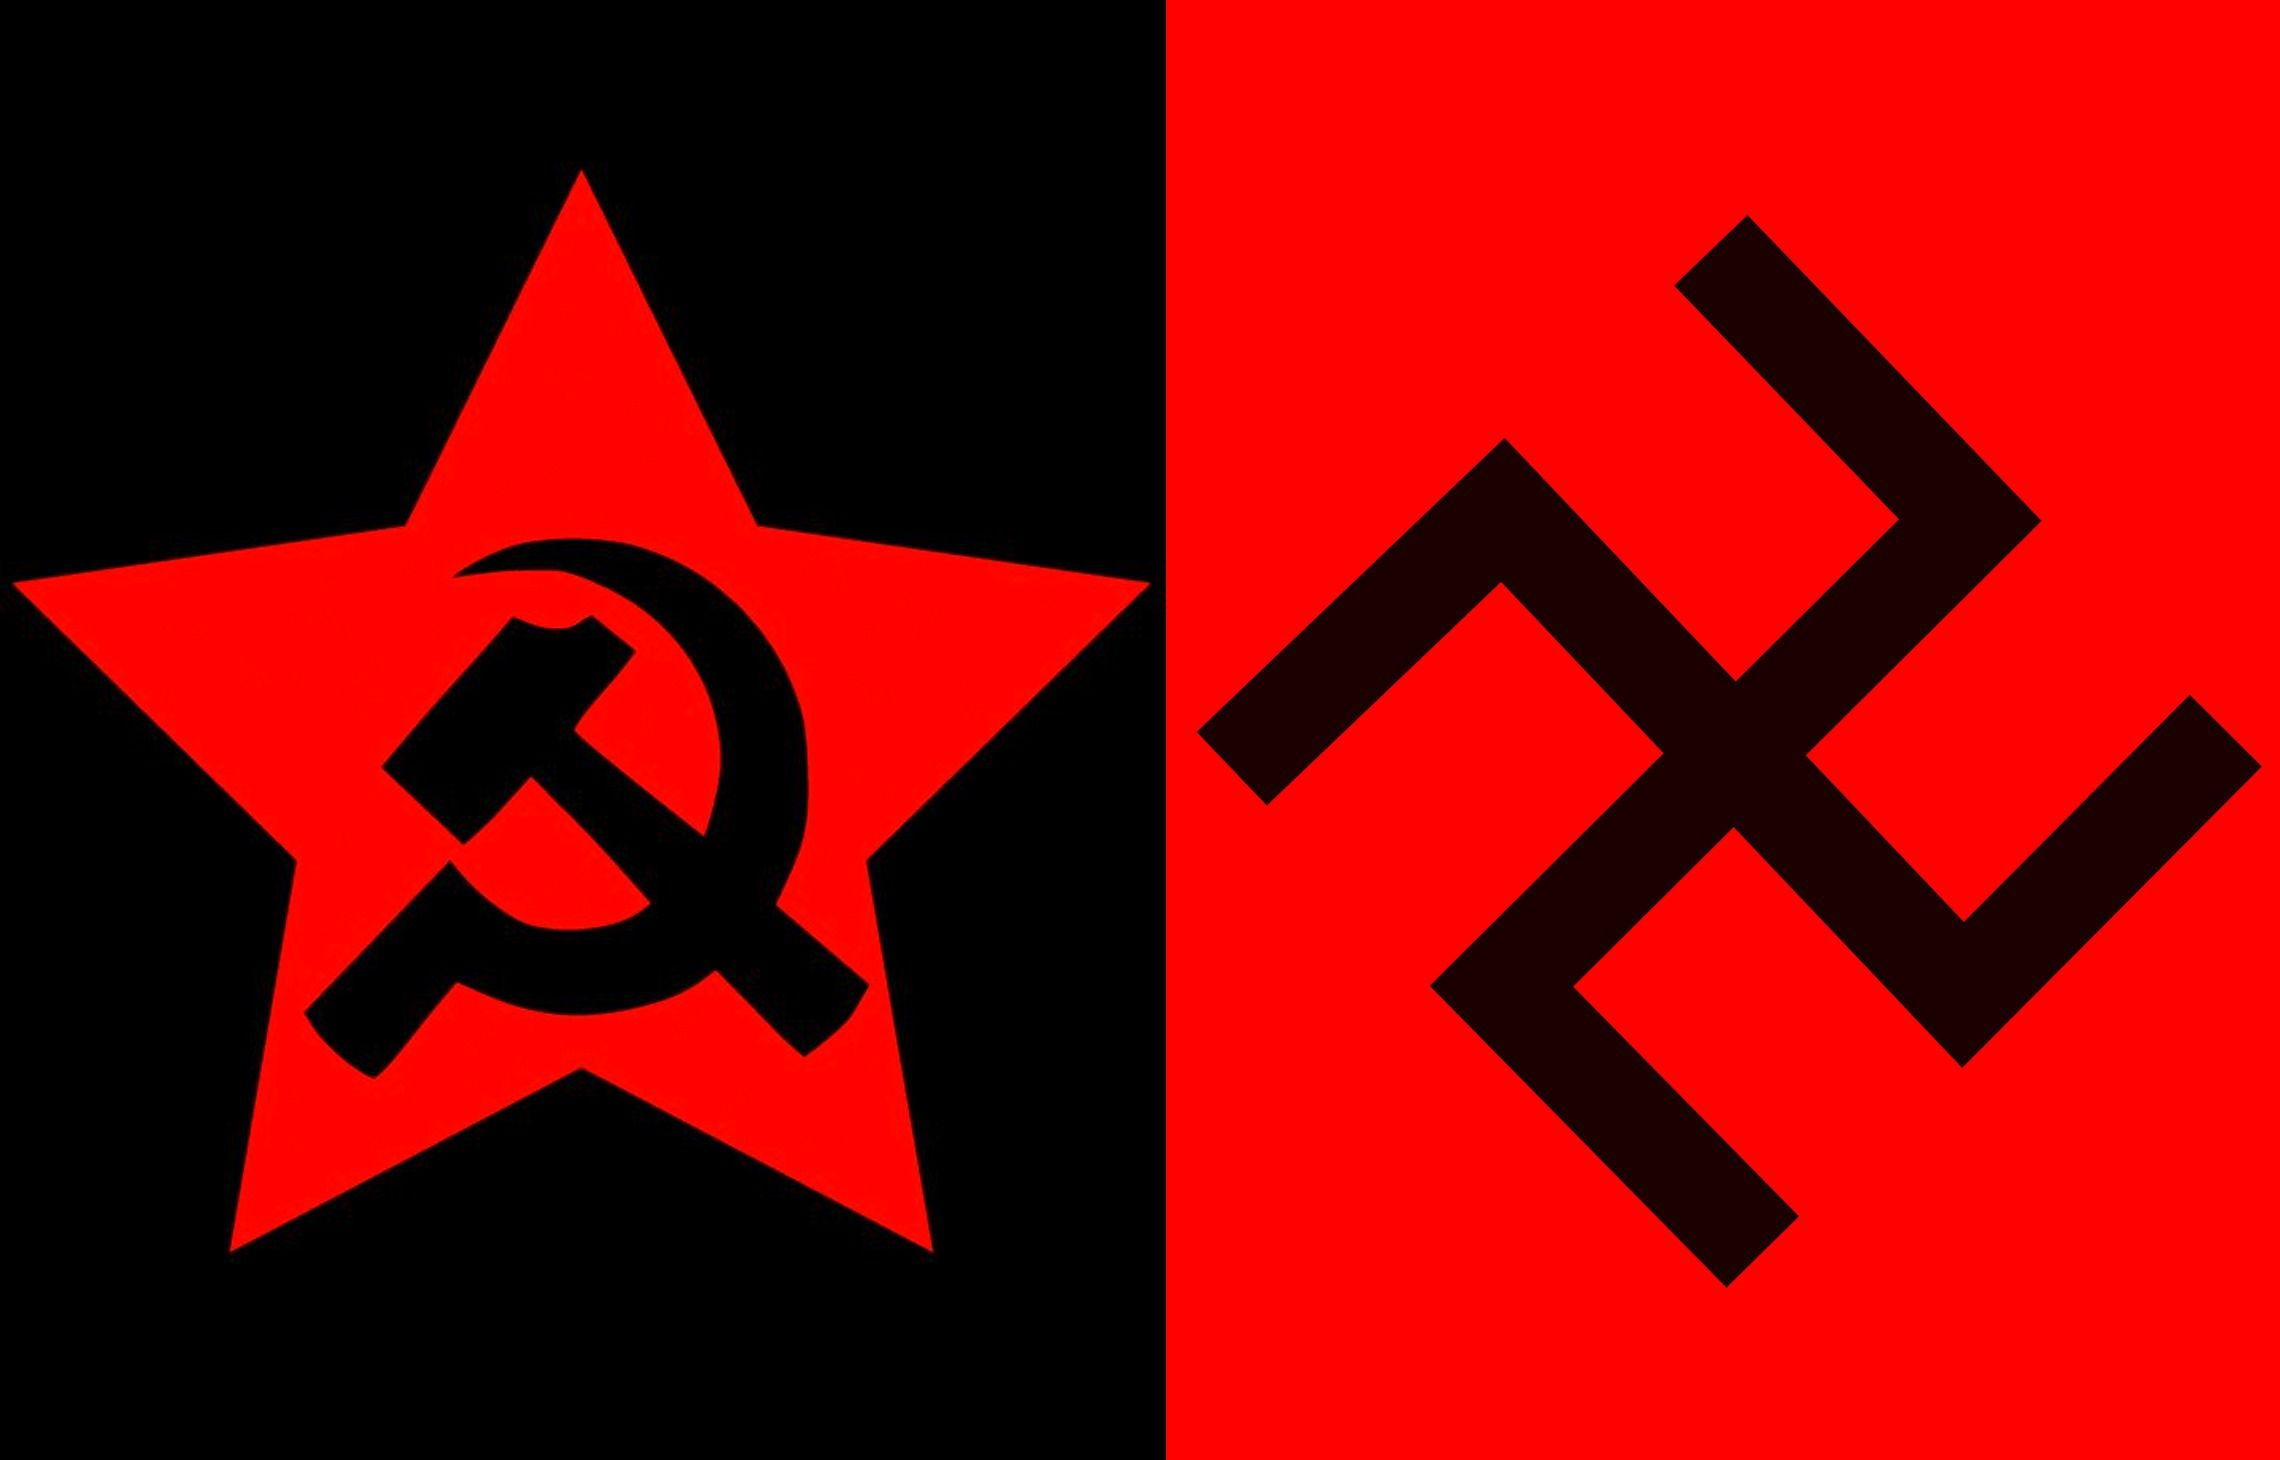 Was stalin as bad as hitler in many ways yes the forward is communism worse than nazism biocorpaavc